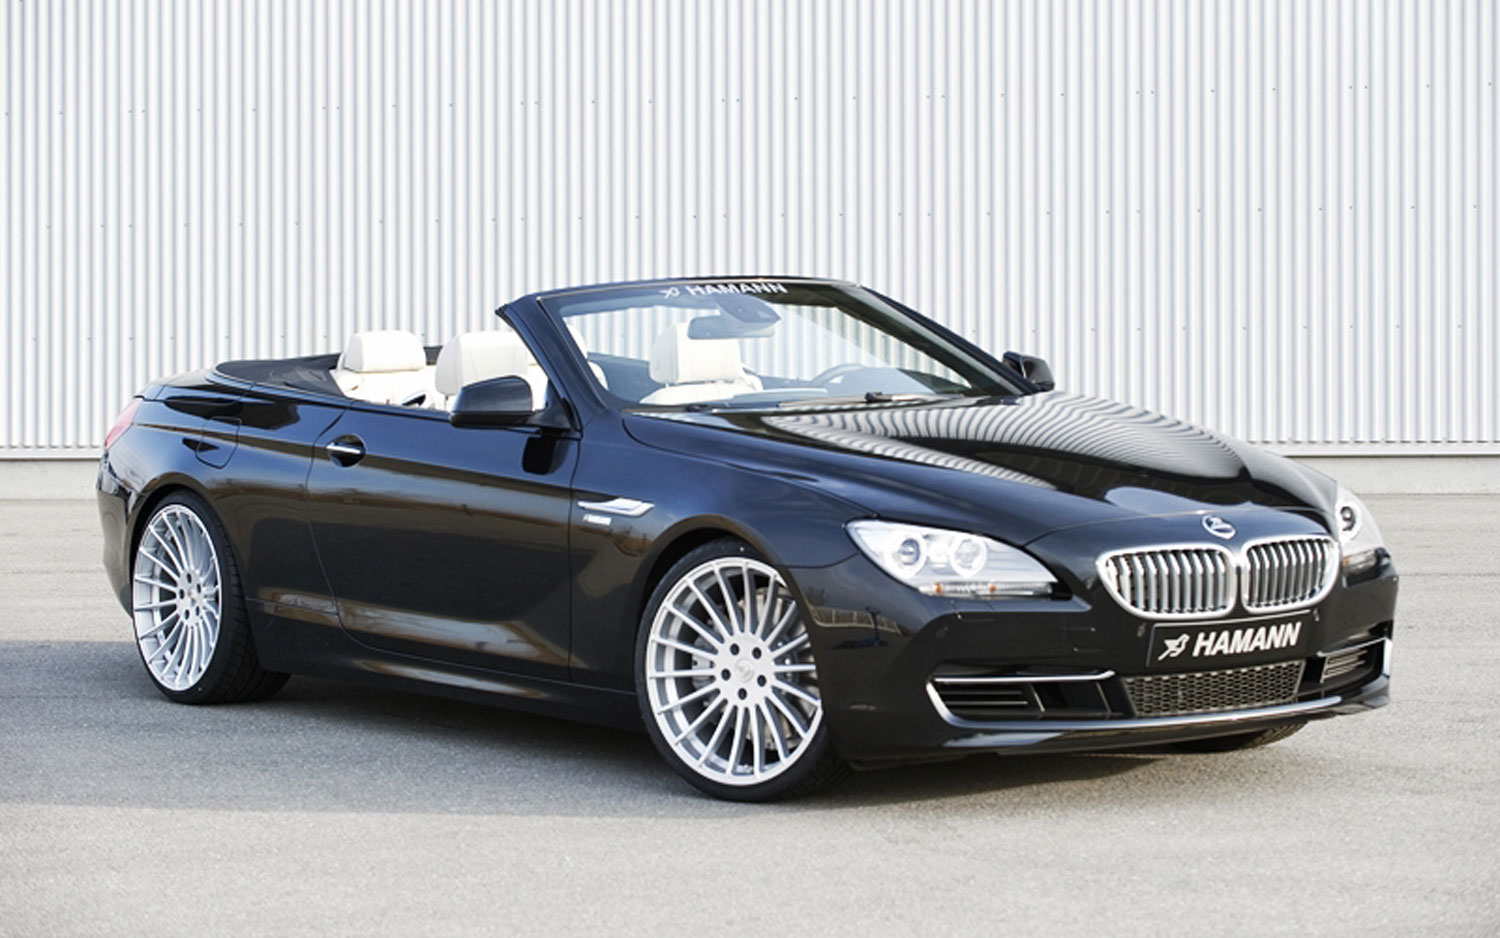 BMW 6 Series Convertible Gets Makeover